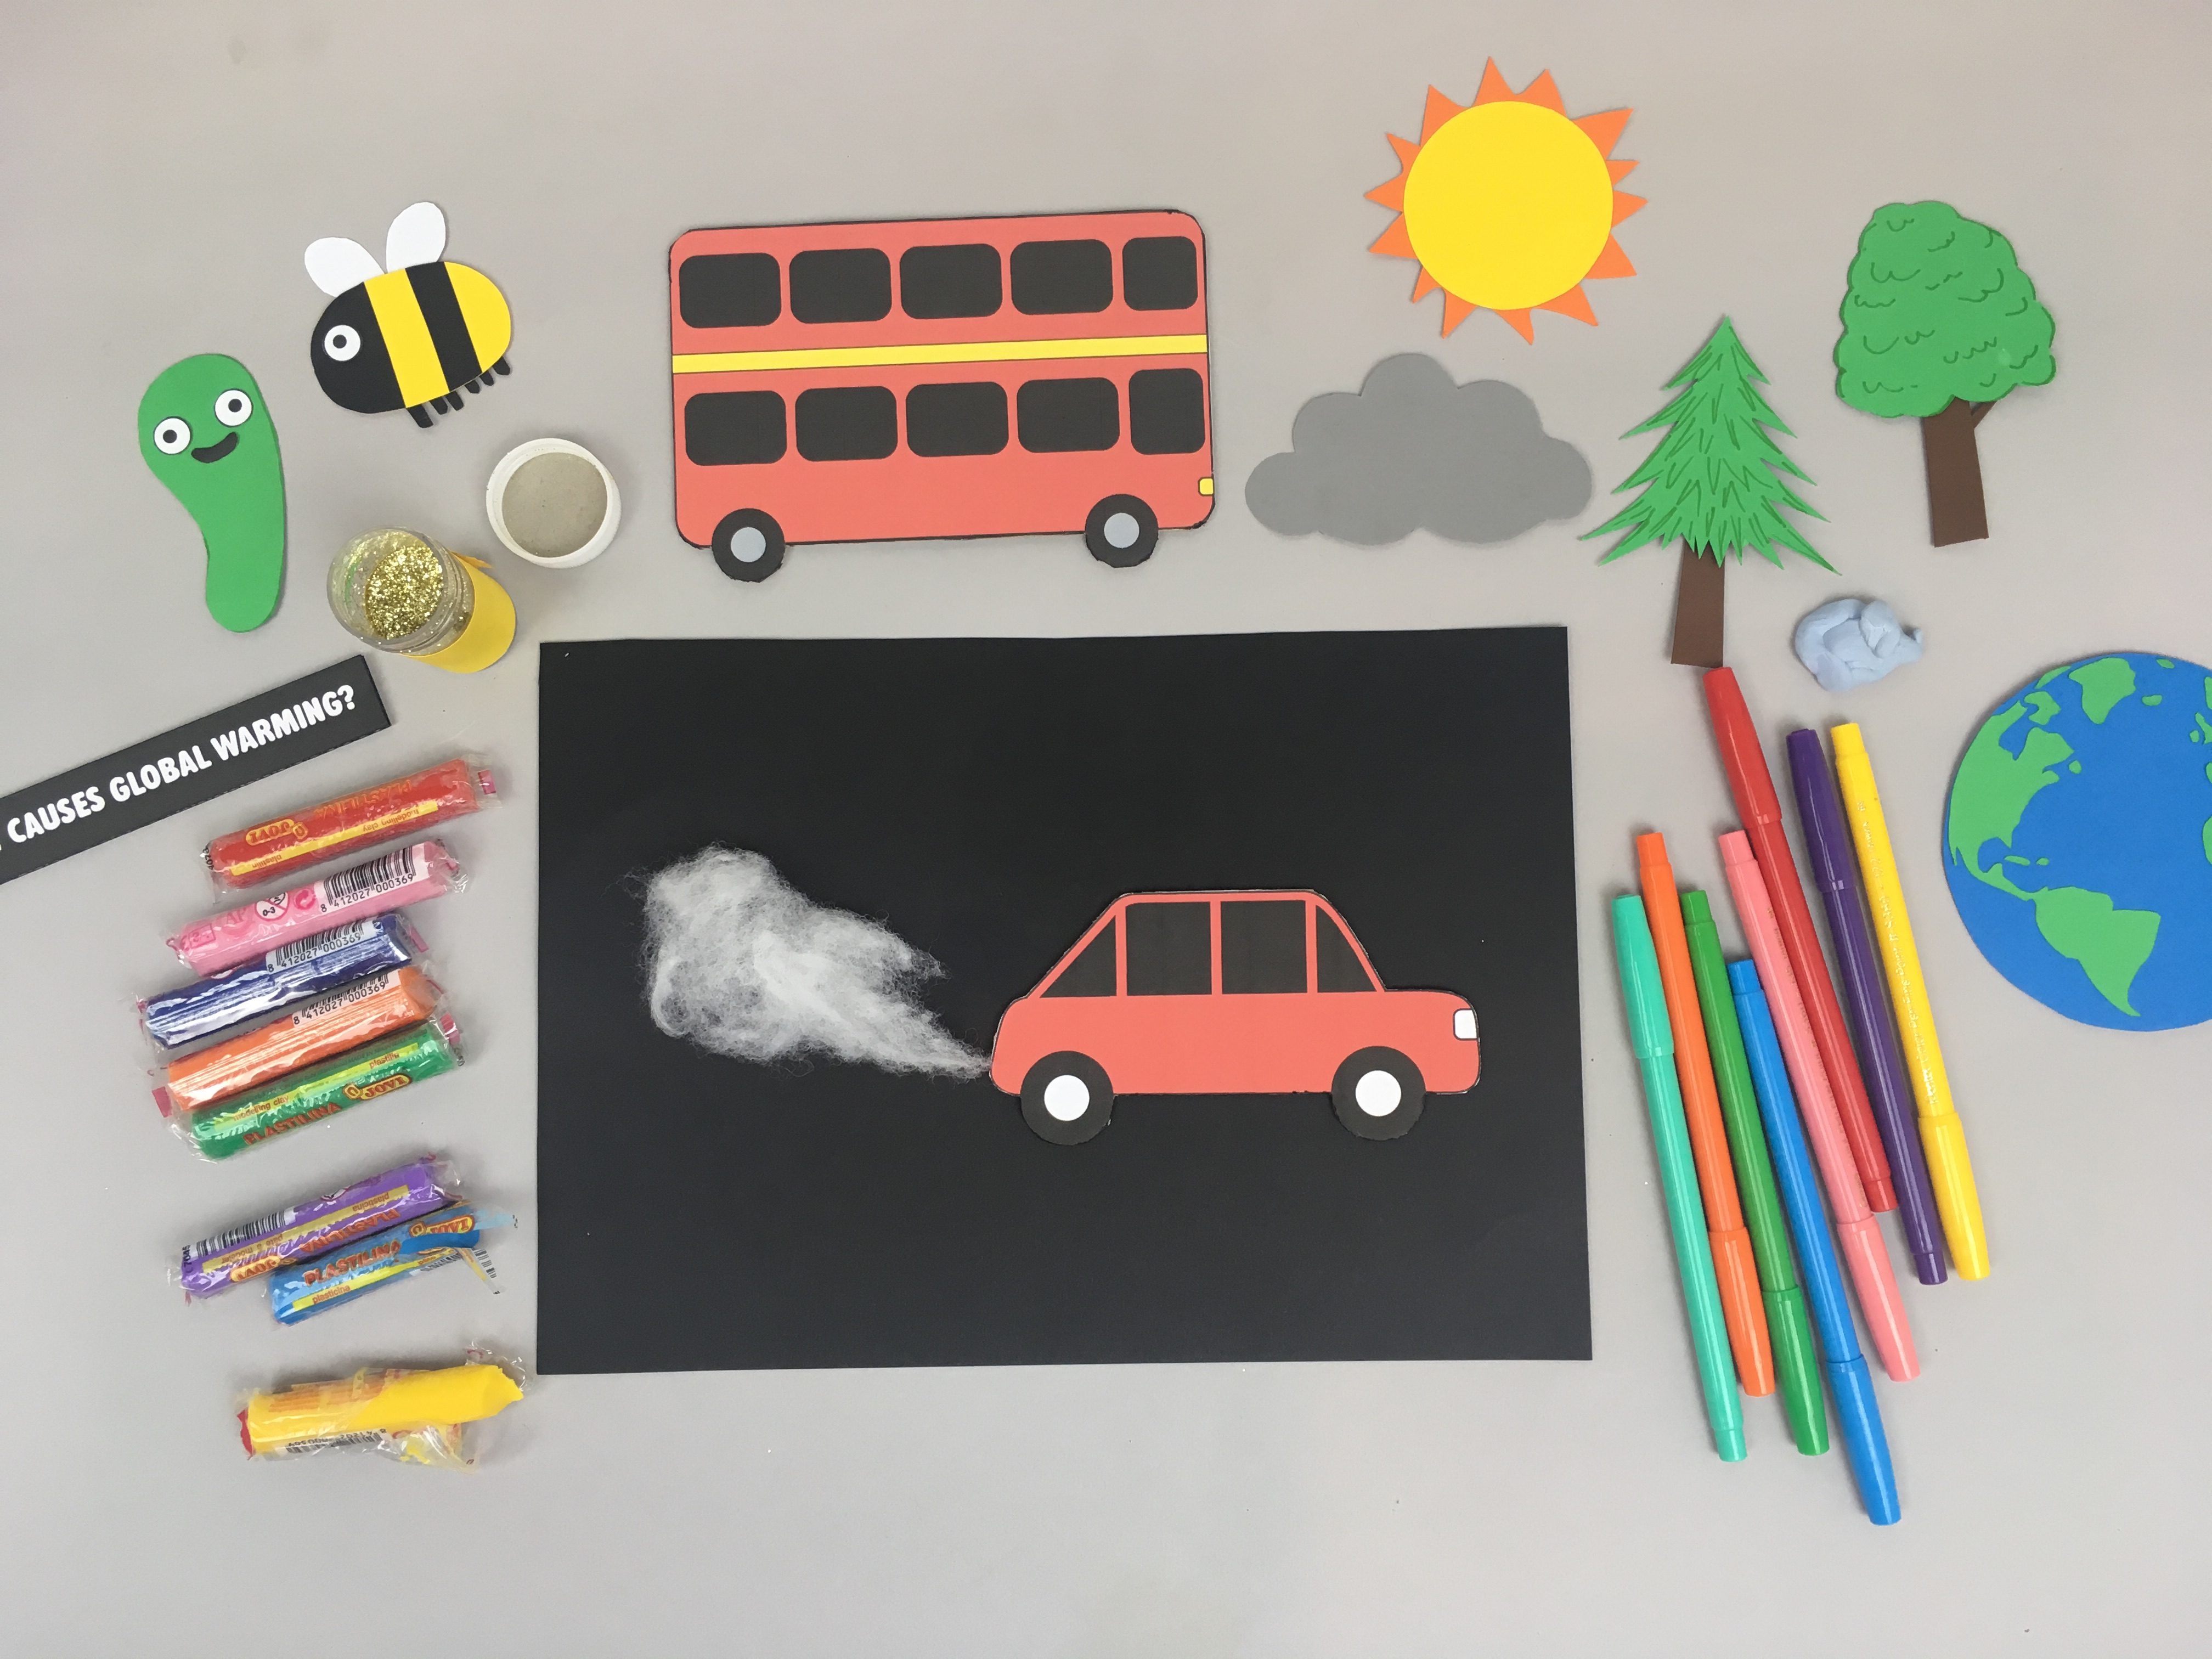 HUE Global Warming animation recording - vehicle pollution